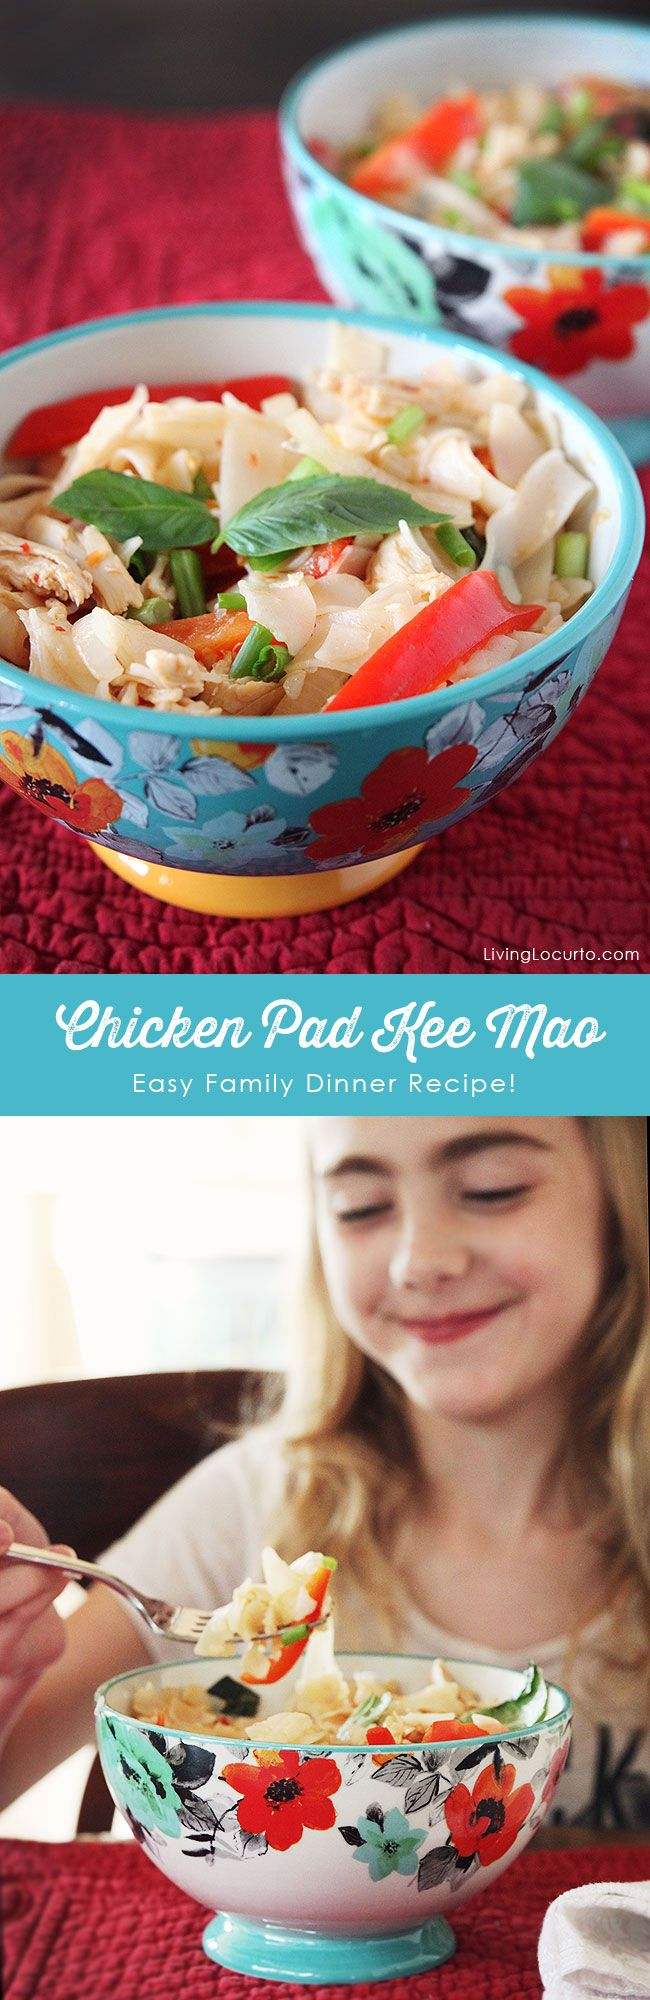 Blue apron unit economics